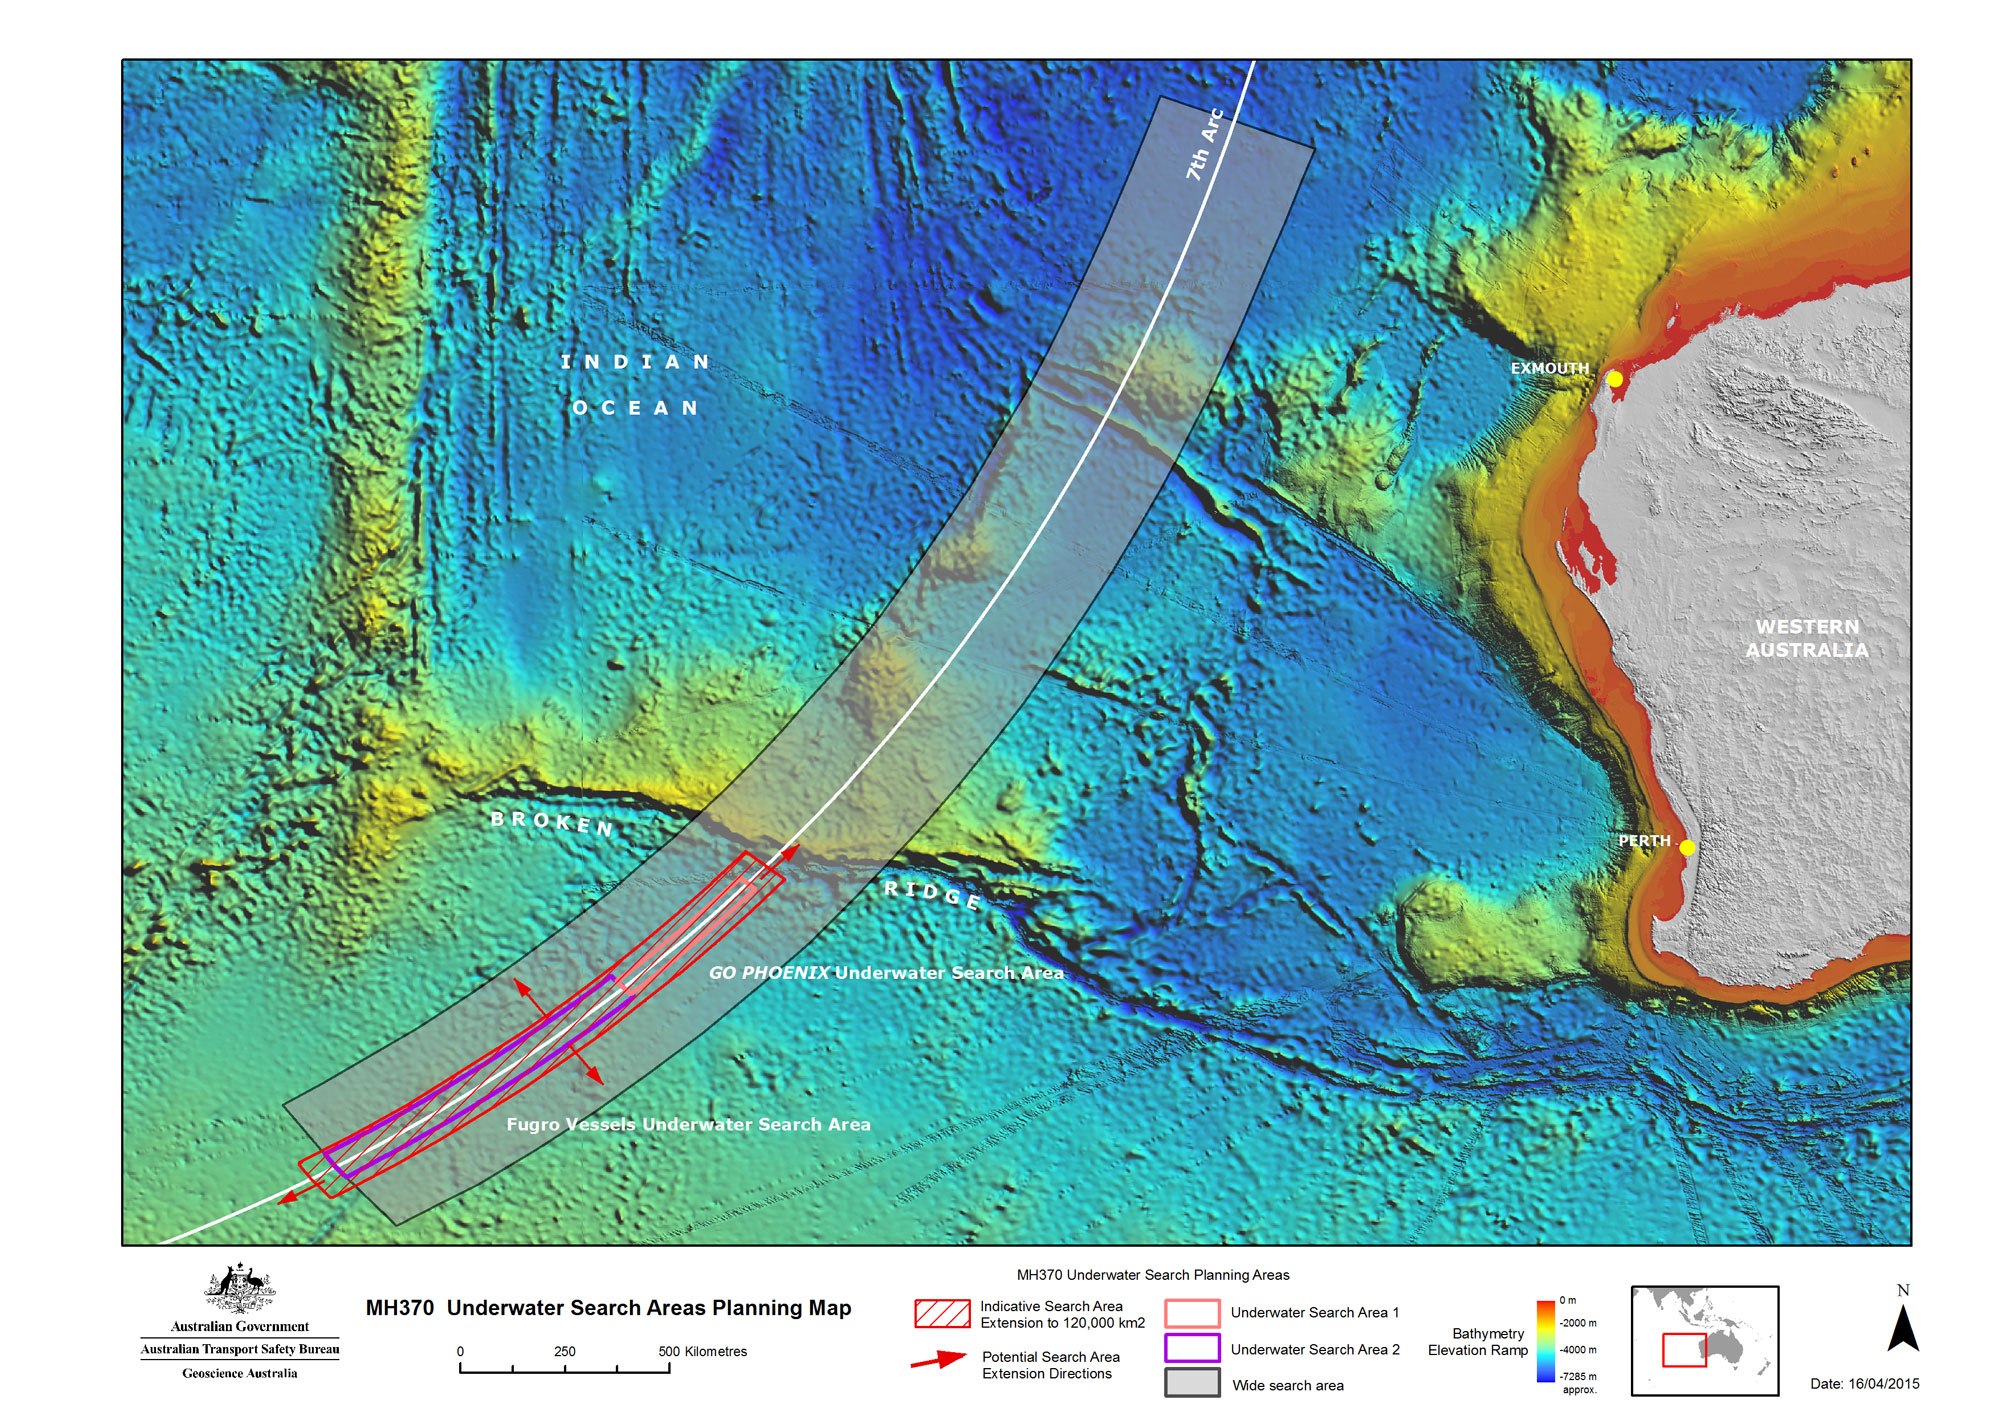 Malaysia airlines plane flight mh370 missing photo an expanded search zone for missing malaysia airlines flight mh370 is seen in a map released april 16 2015 publicscrutiny Image collections